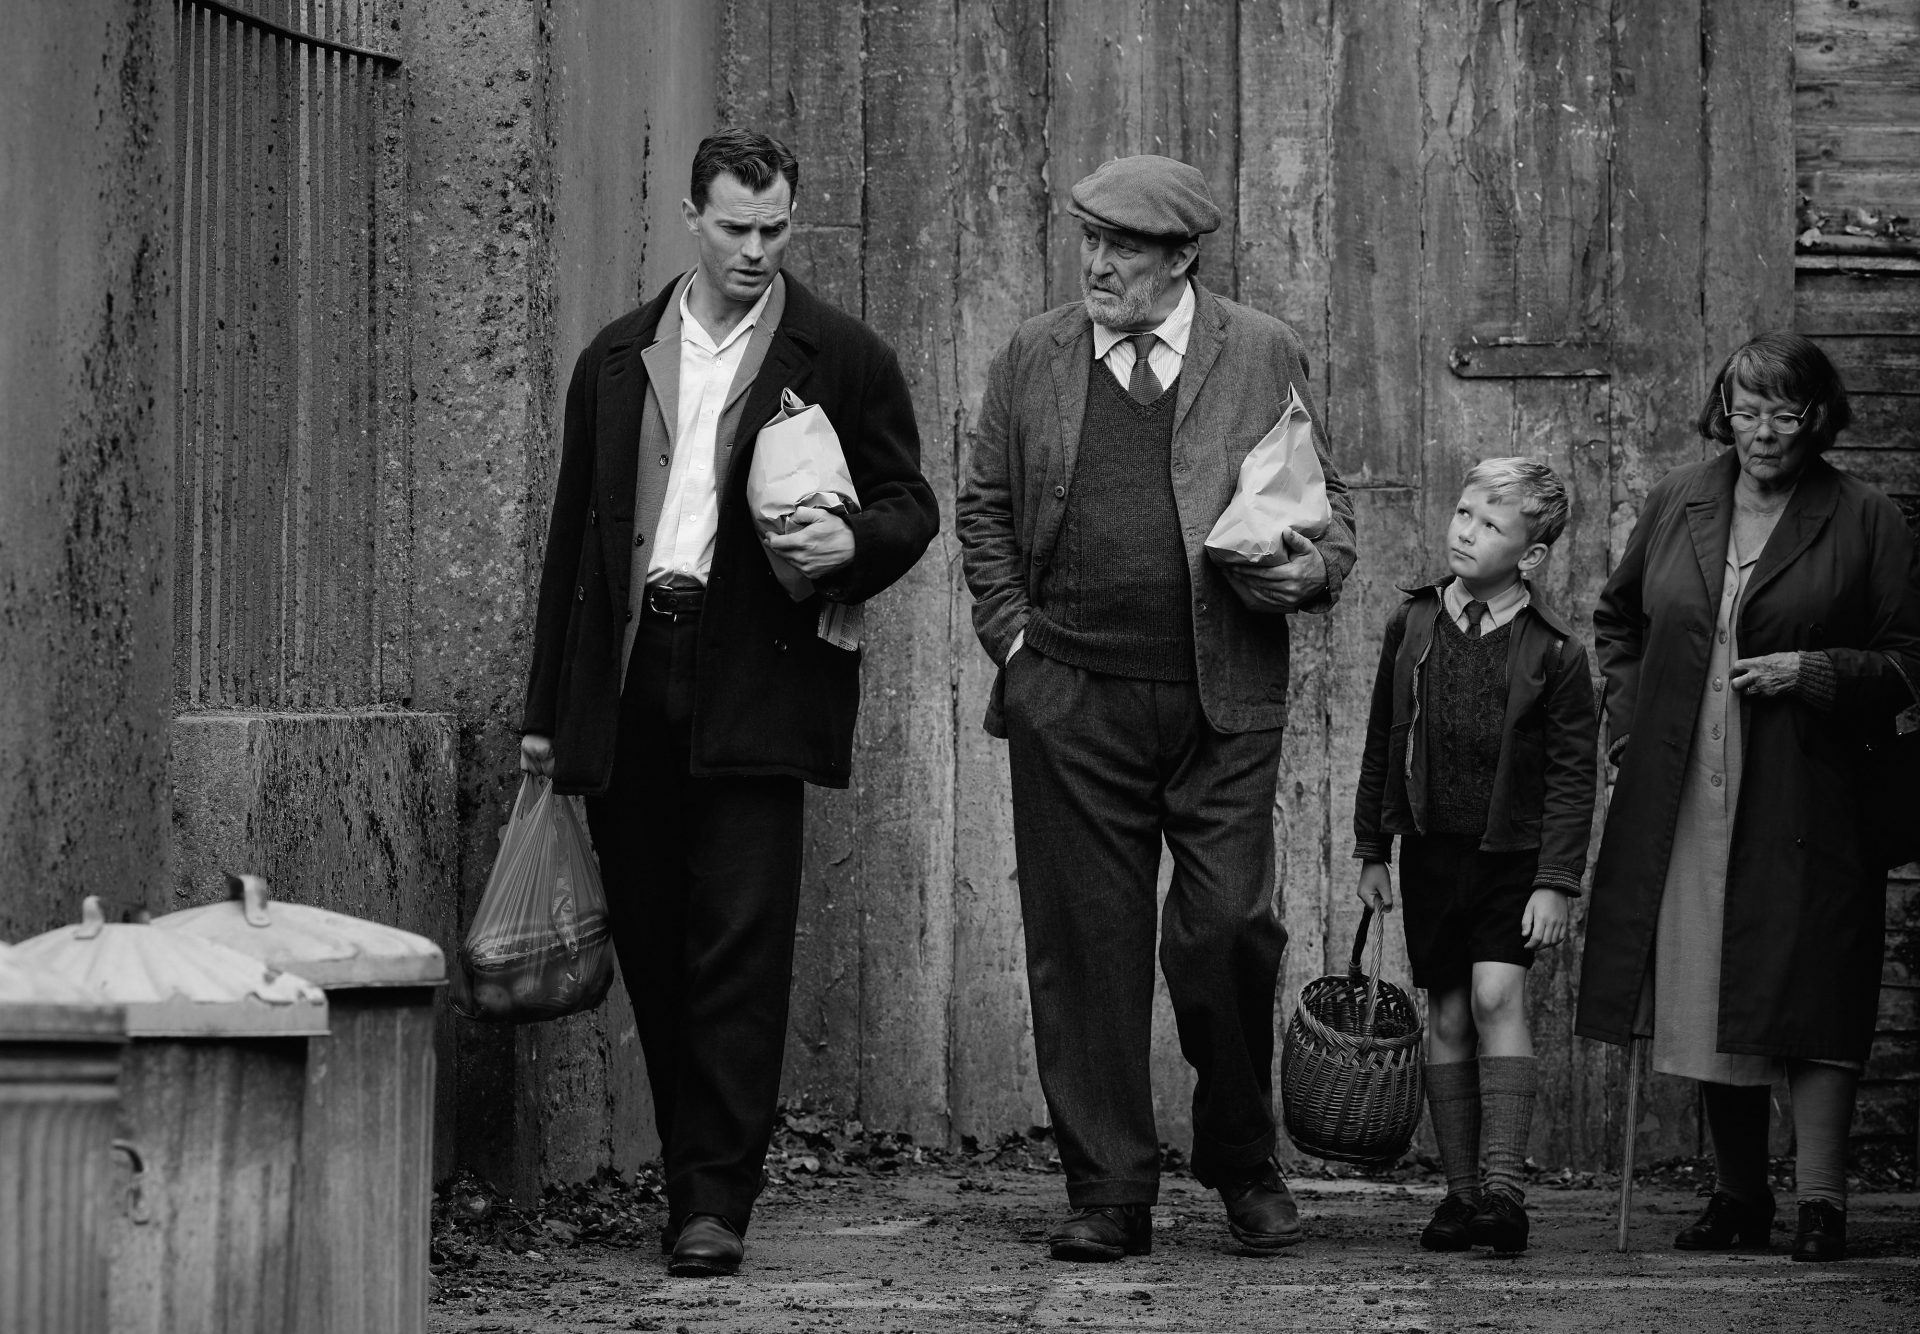 Jamie Dornan as Pa, Ciarán Hinds as Pop, Jude Hill as Buddy, and Judi Dench as Granny in Belfast Photo: Rob Youngson / Focus Features